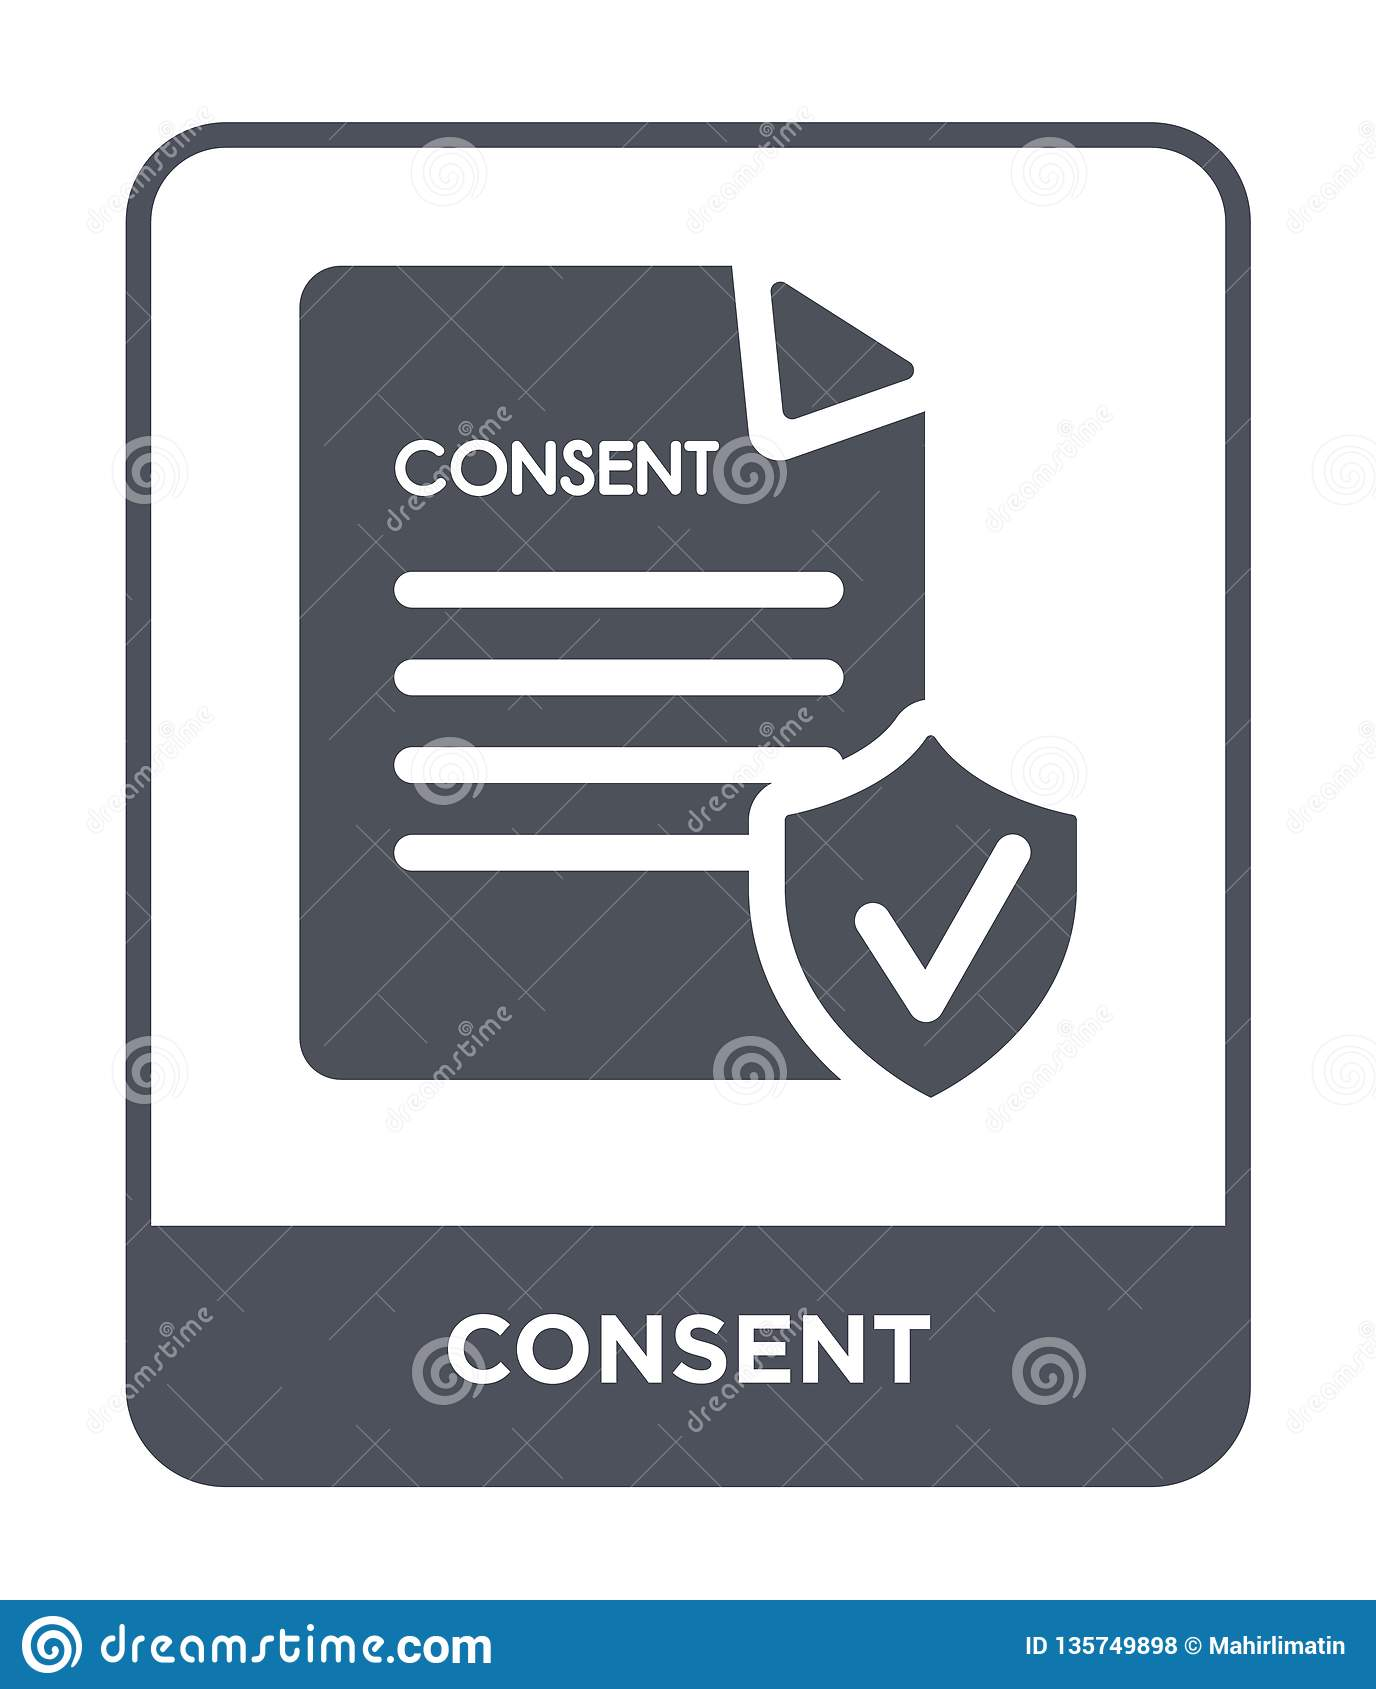 consent icon in trendy design style. consent icon isolated on white background. consent vector icon simple and modern flat symbol